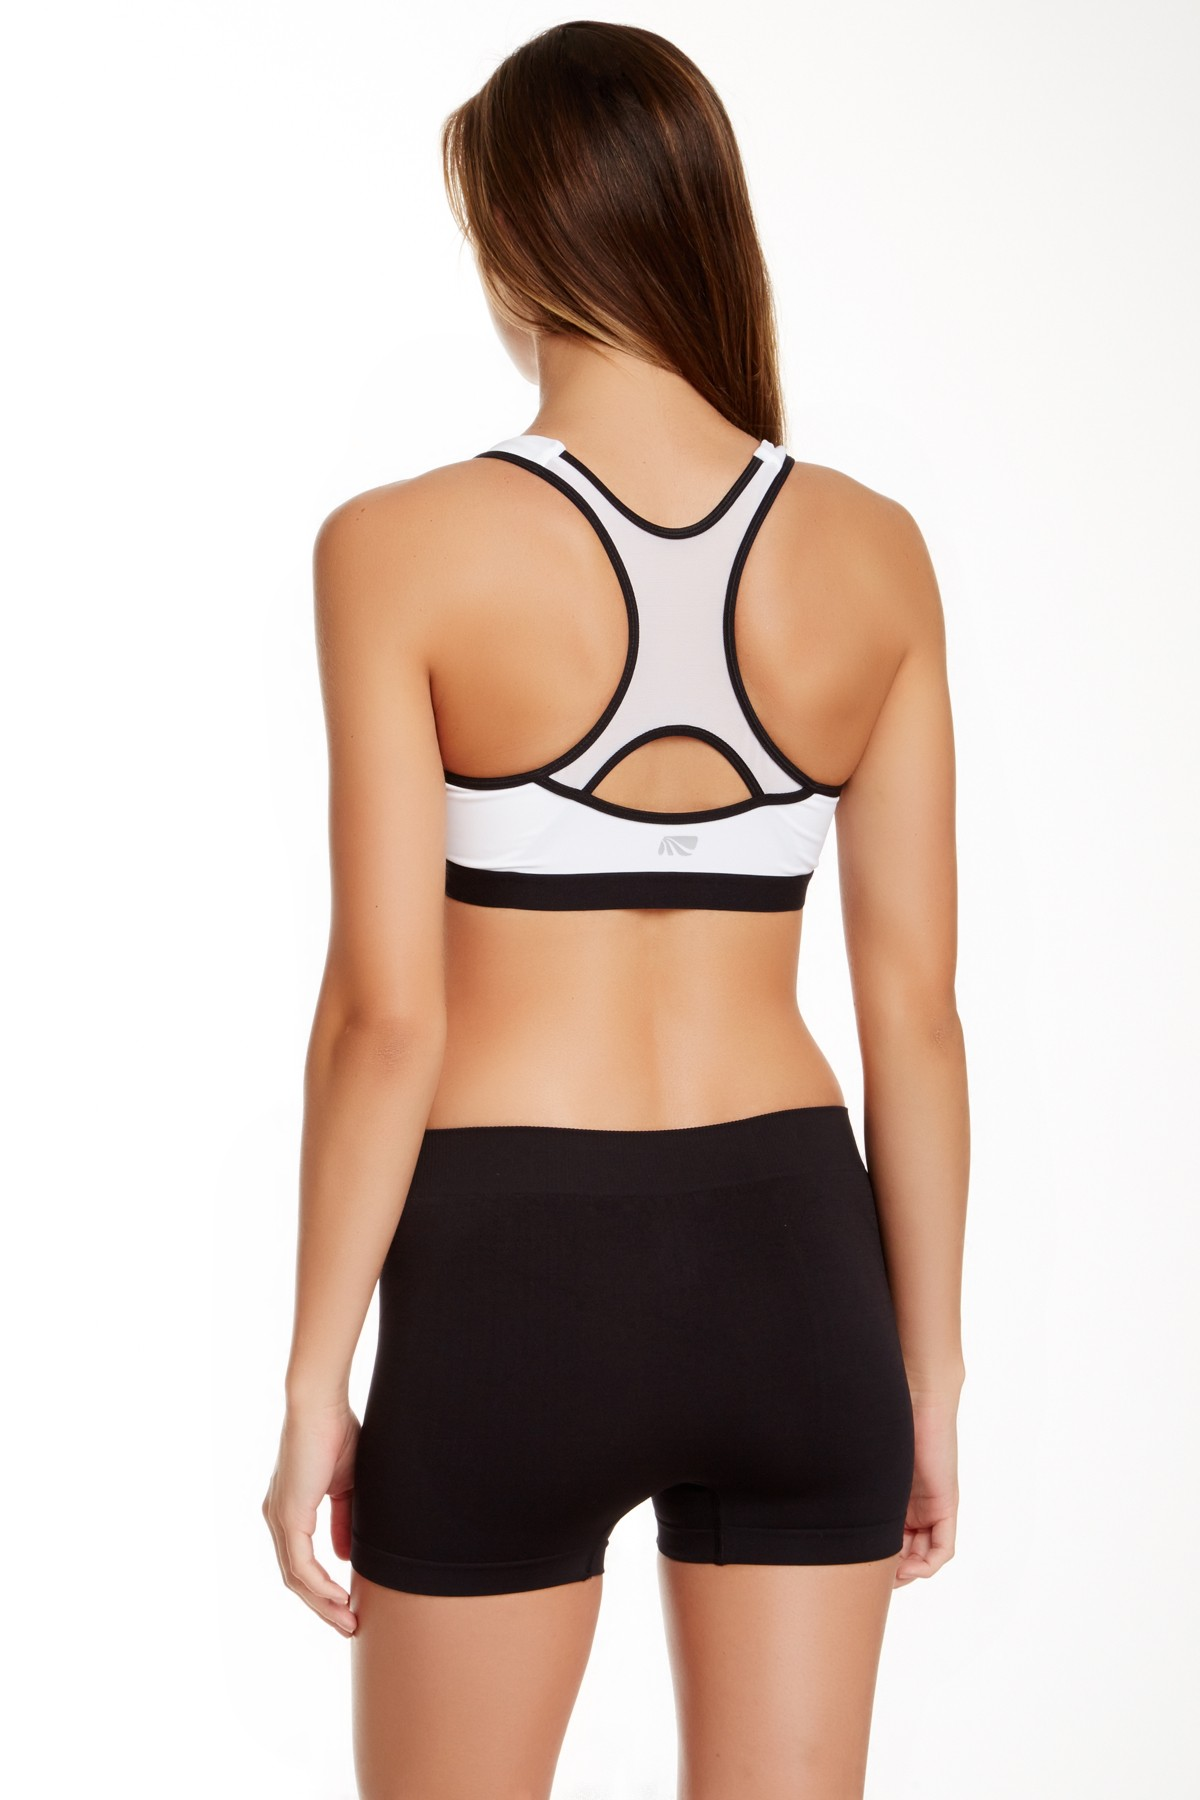 615d1fb6a0 Marika M50101 High Impact Microfiber Sports Bra SZ S White Black